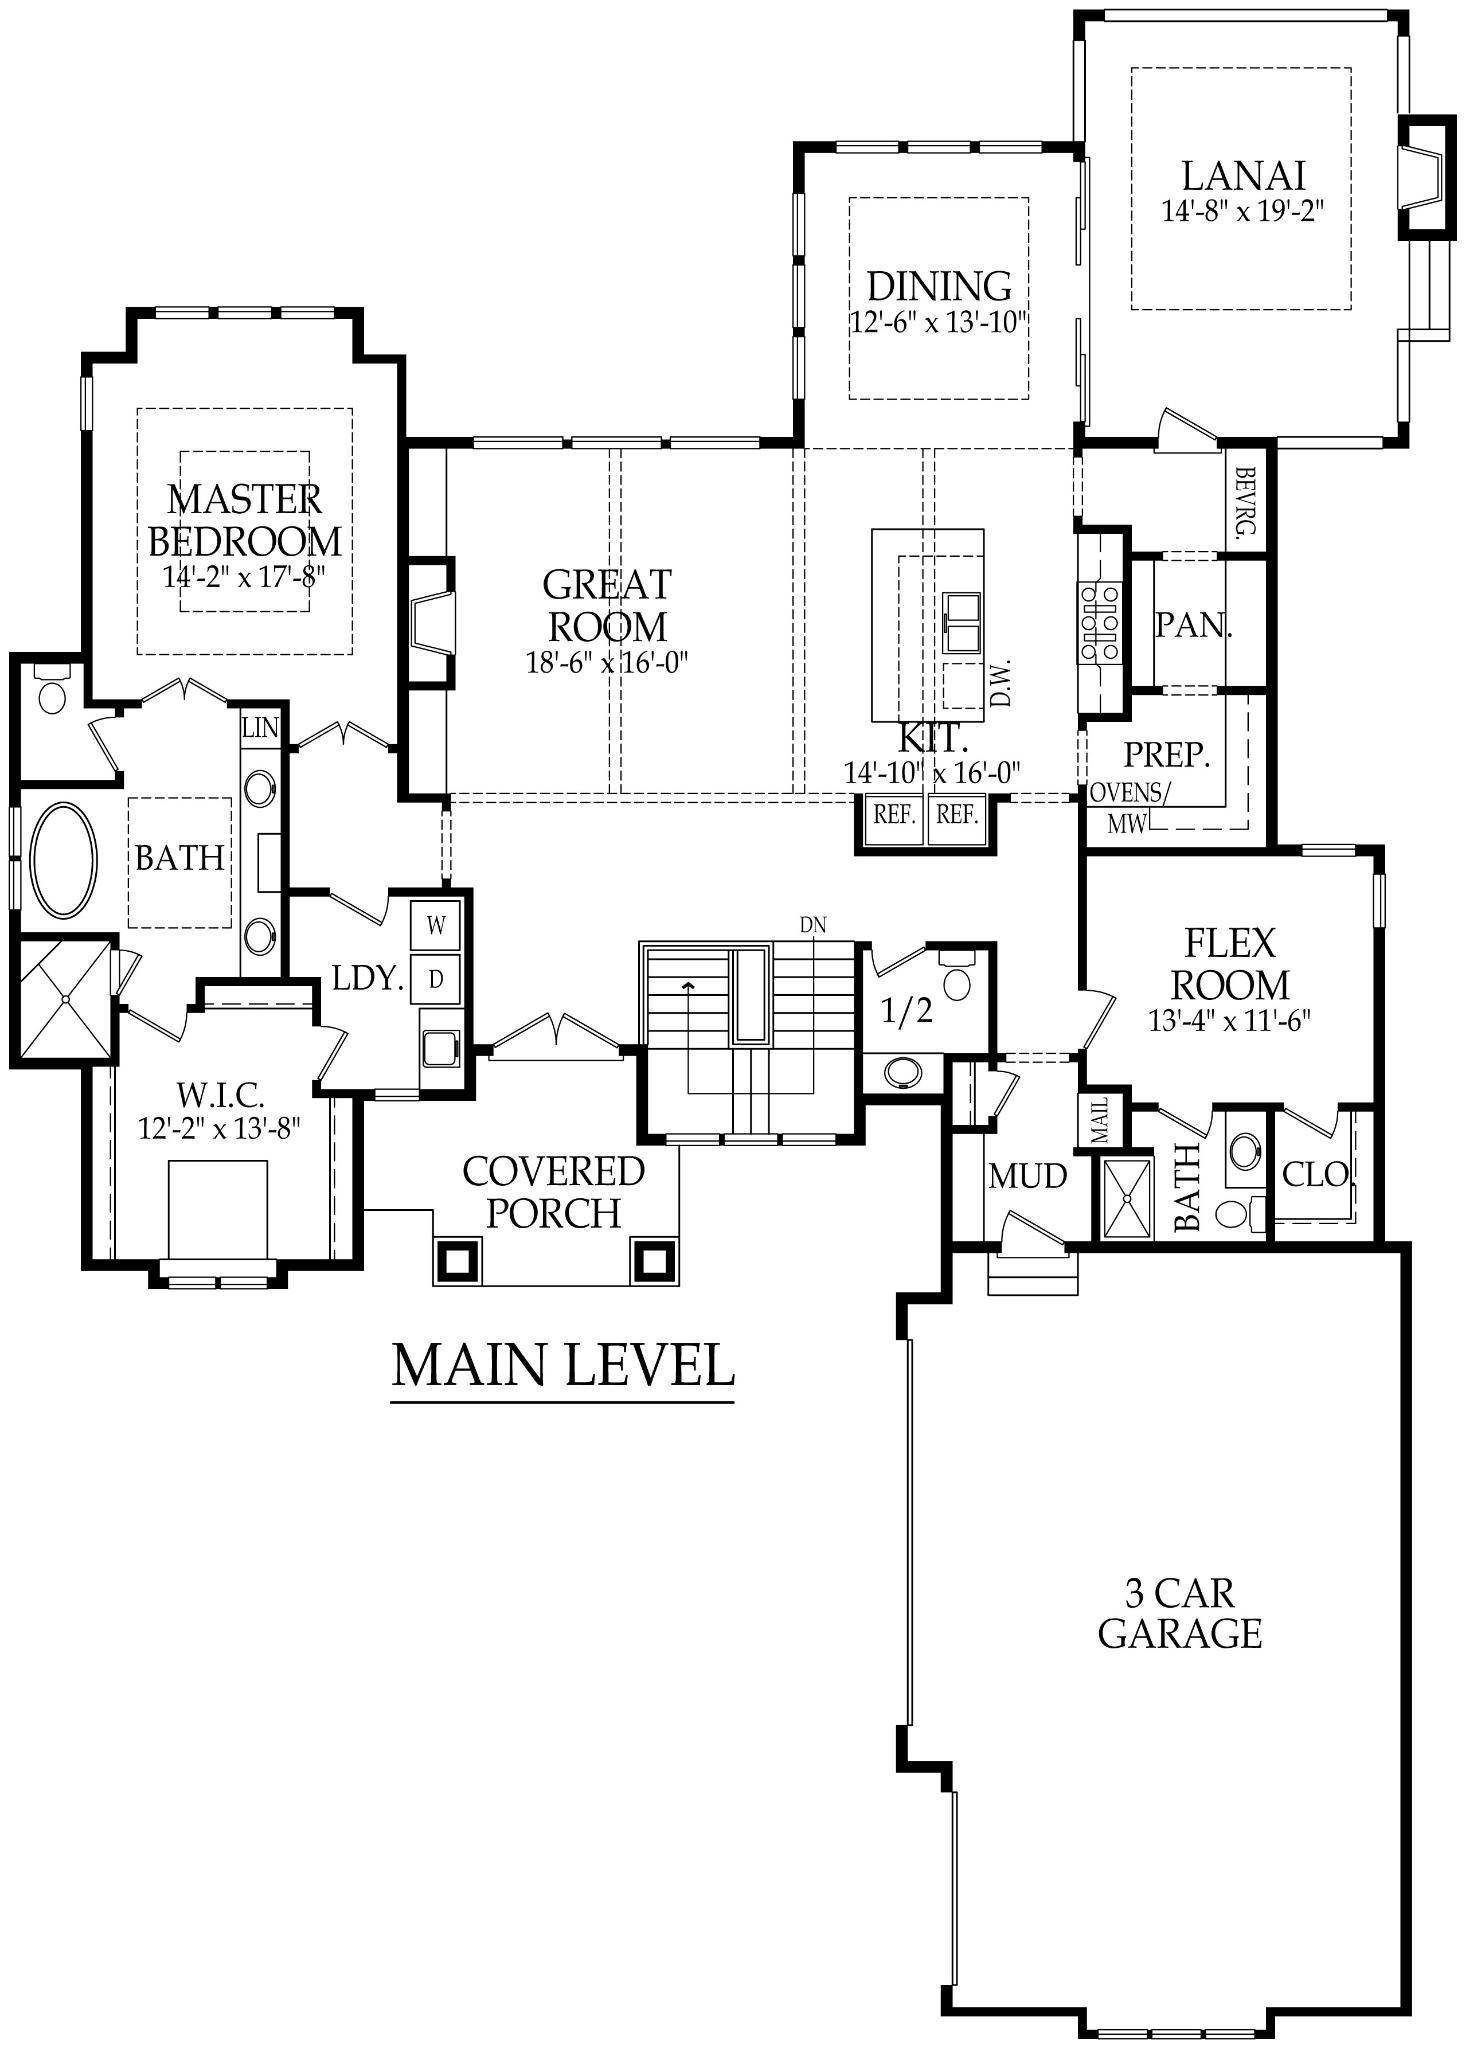 New home in Loch Lloyd by Starr Homes Sanibel floor plan main level